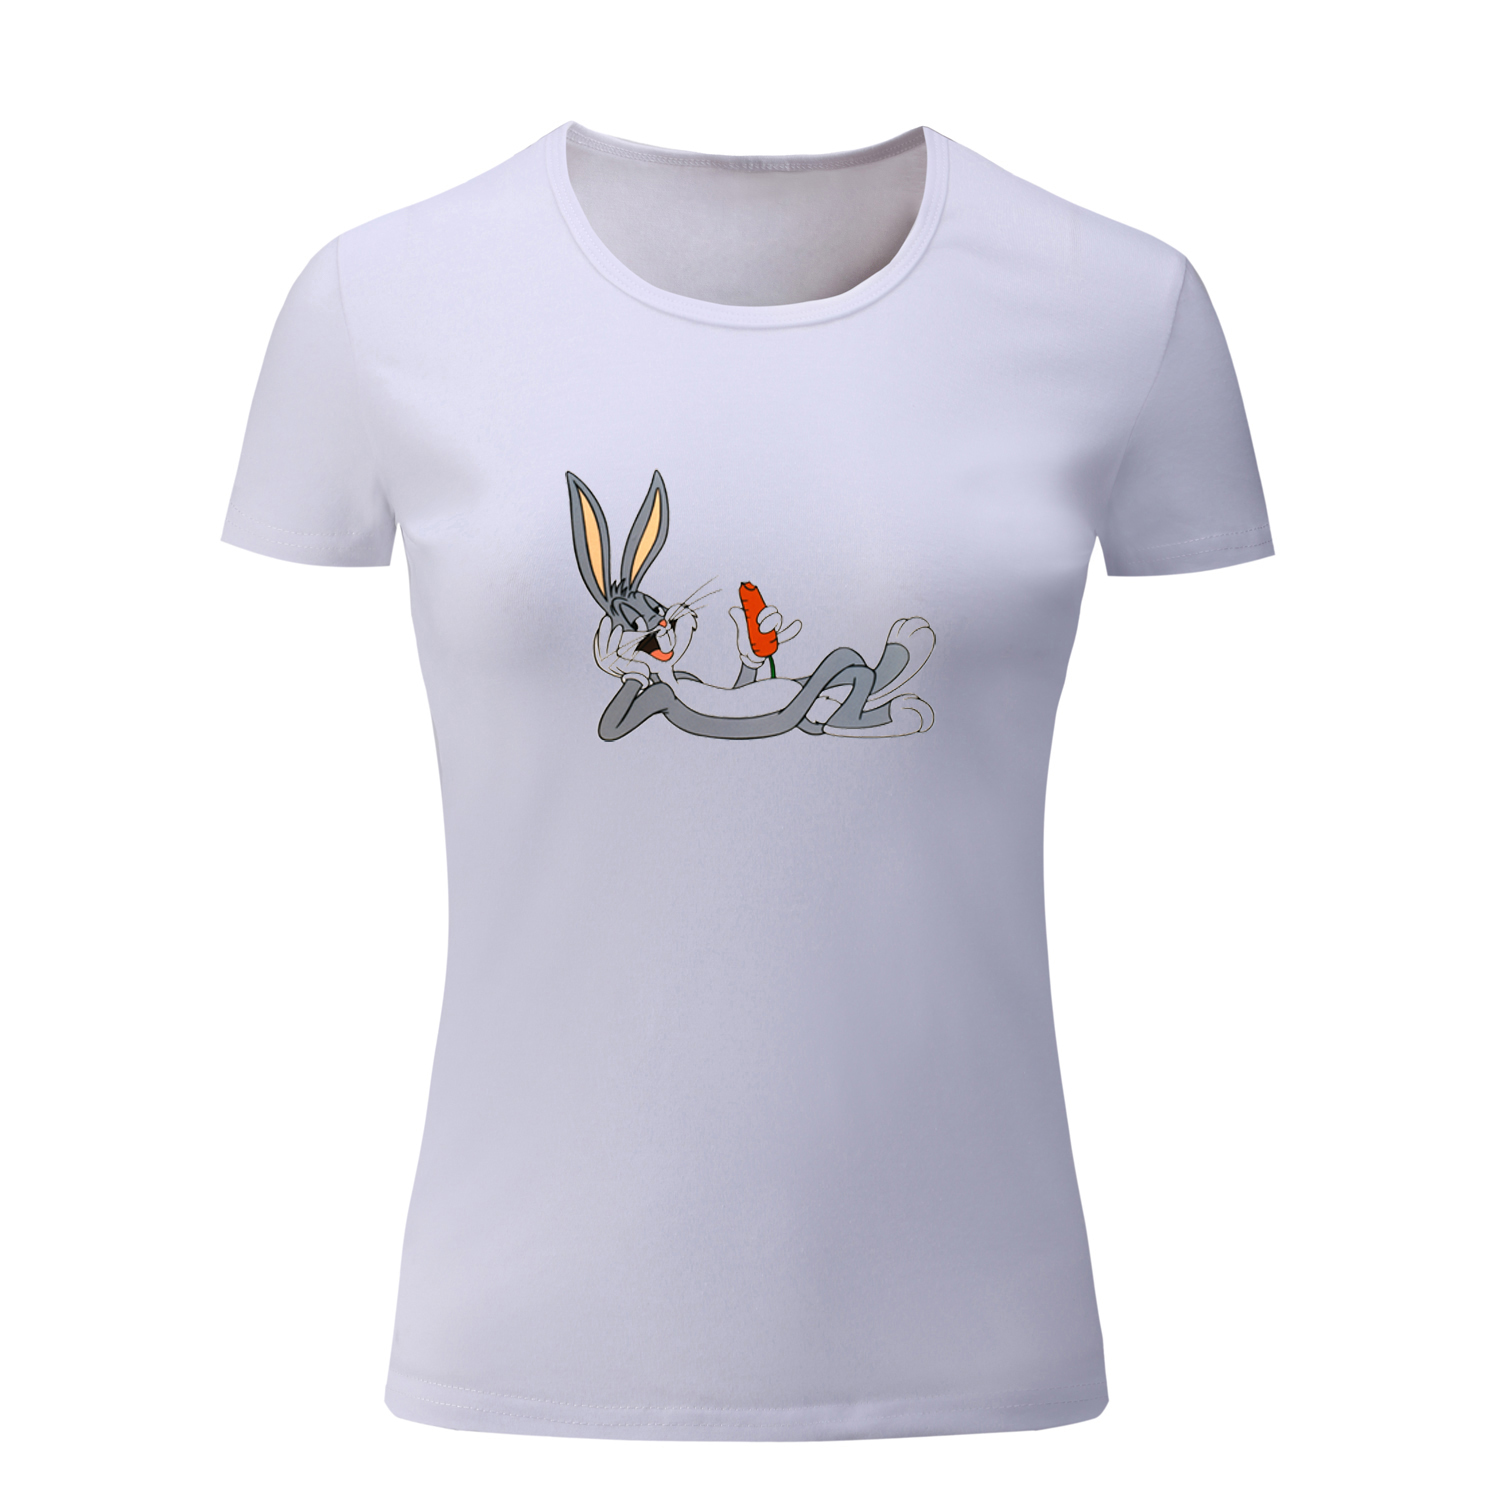 Summer Cute Bugs Bunny T Shirt Women Short T-Shirt for Girl Casual Cartoon Tshirt Birthday Gift Tee Holiday Tops Multi Colors